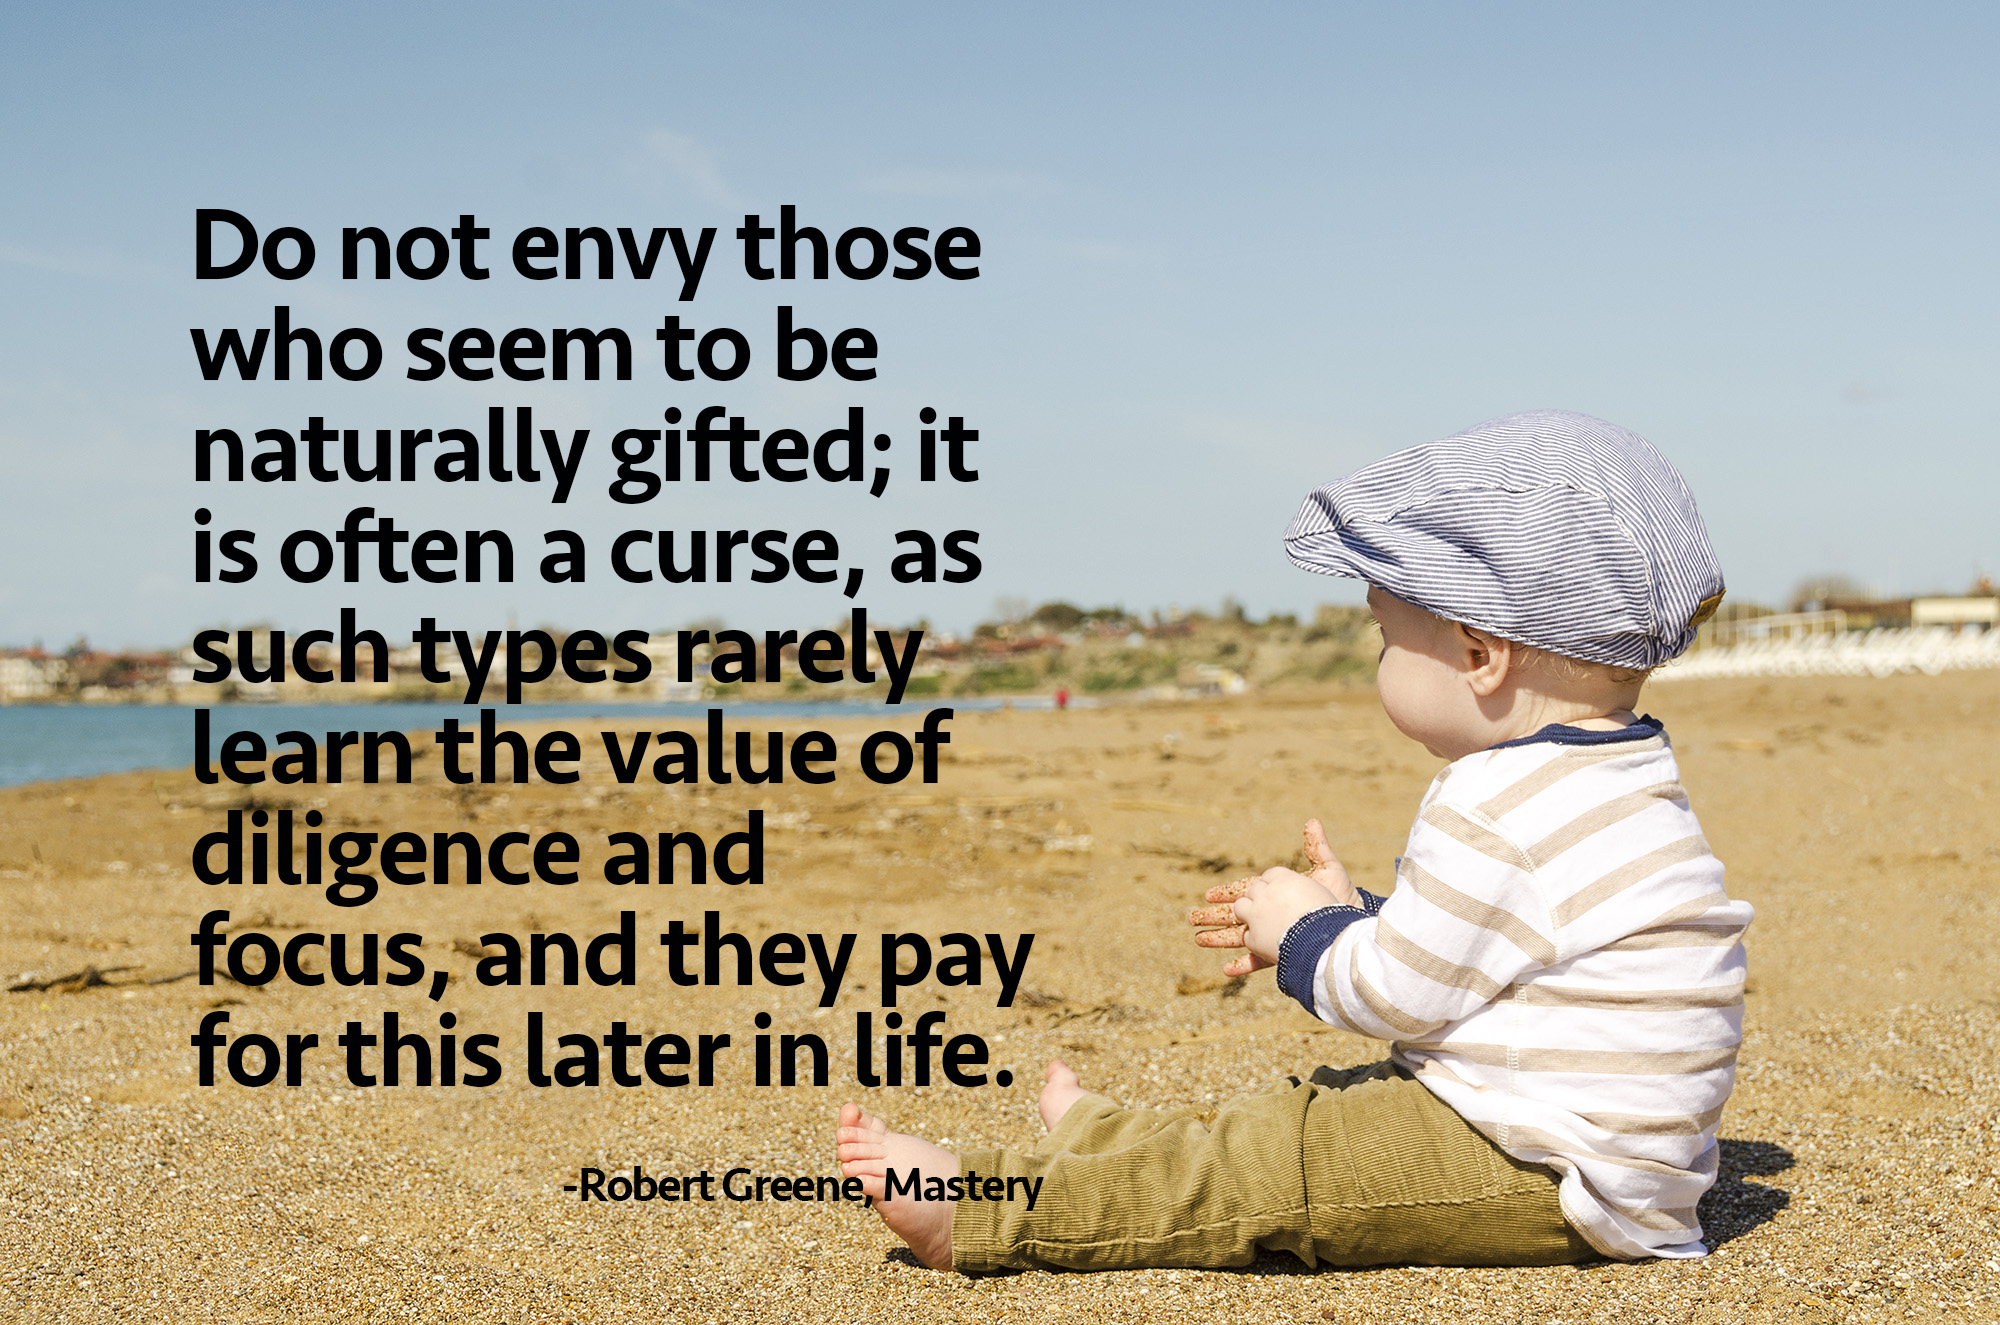 Do-not-envy-those-who-seem-to-be-naturally-gifted